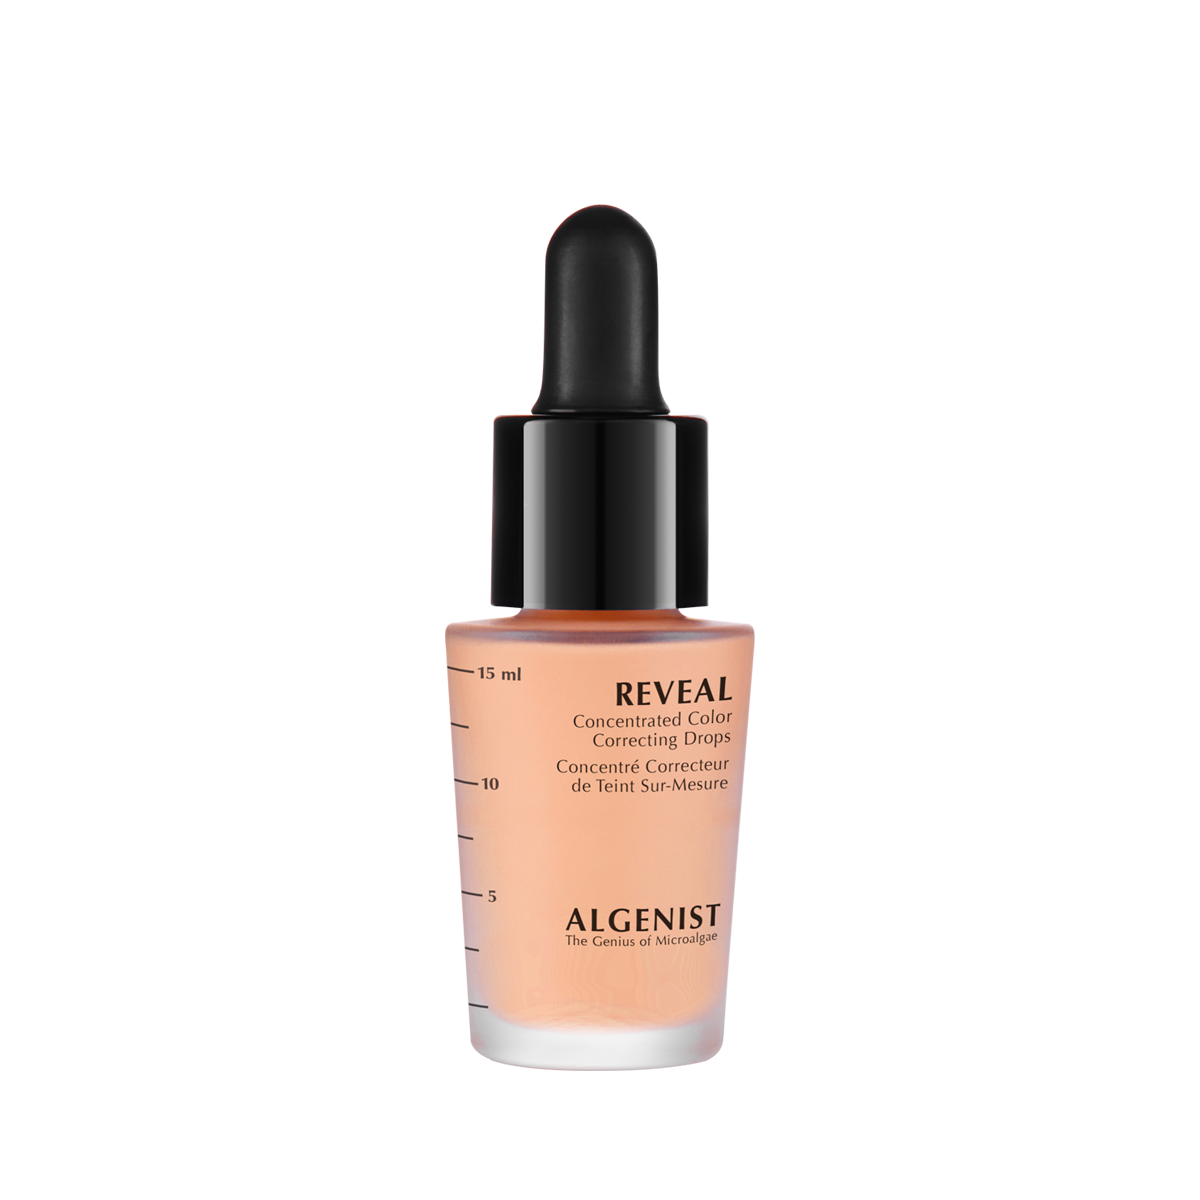 reveal_concentrated_color_correcting_drops_apricot.png